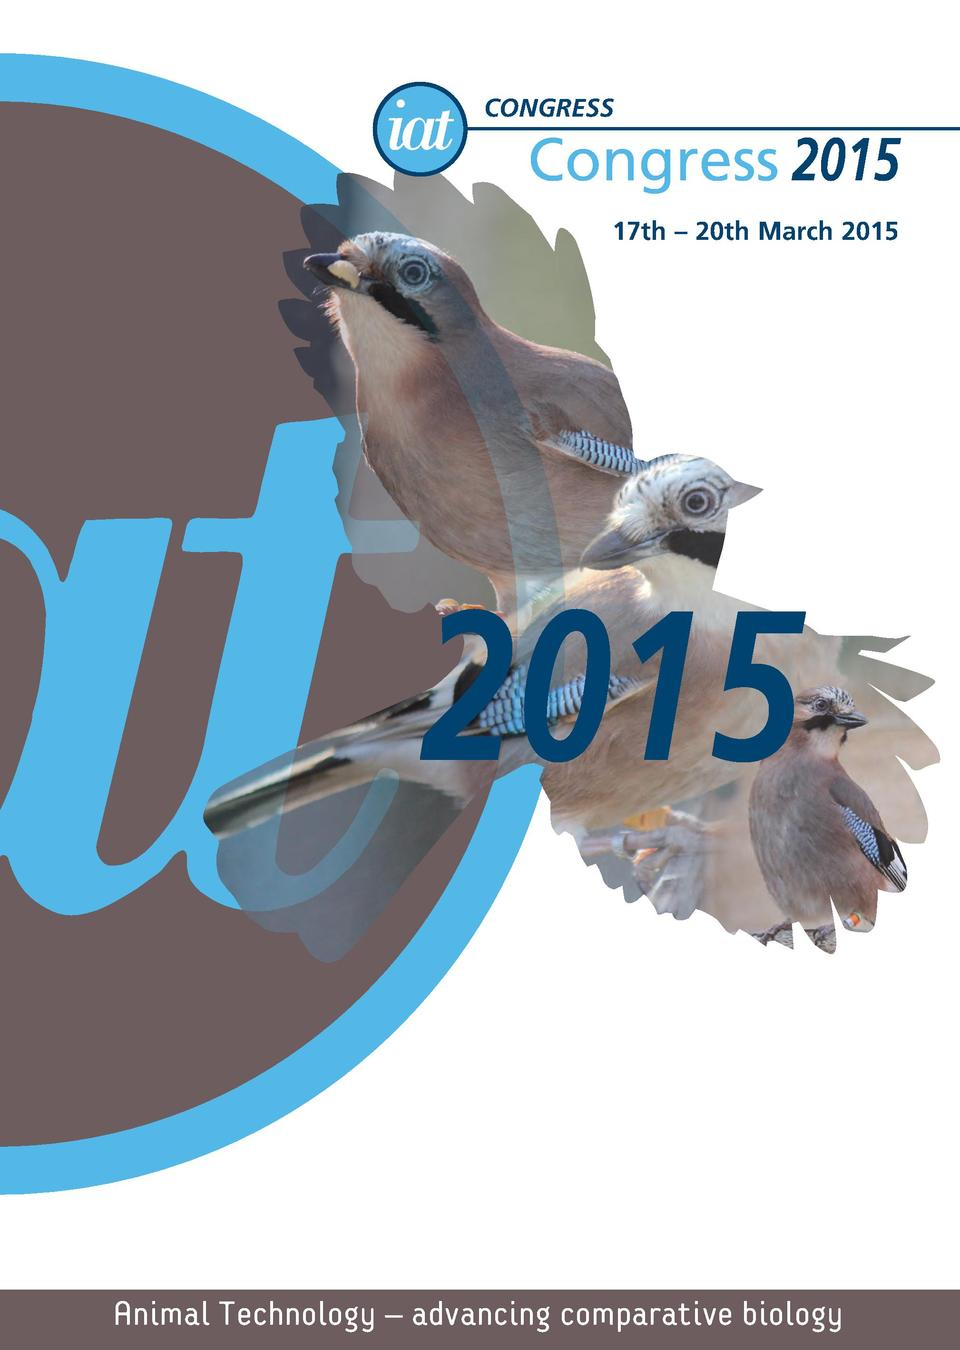 CONGRESS  Congress 2015 Congress 2015  17th     20th March 2015  www.iat.org.uk  2015  17th     20th March 2015  Animal Te...